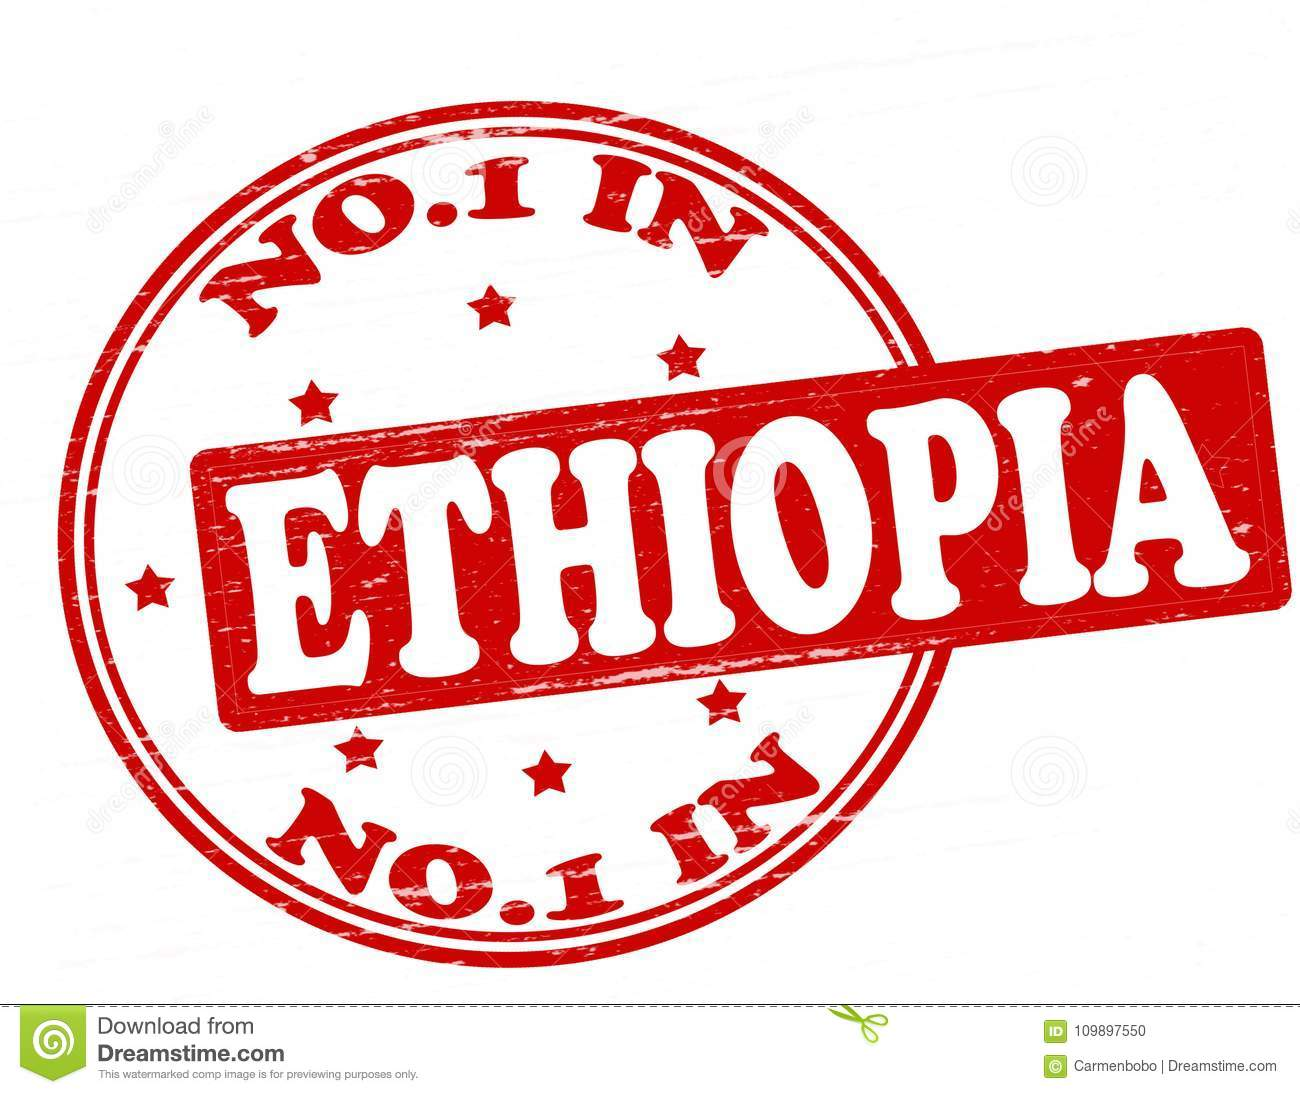 No one in Ethiopia